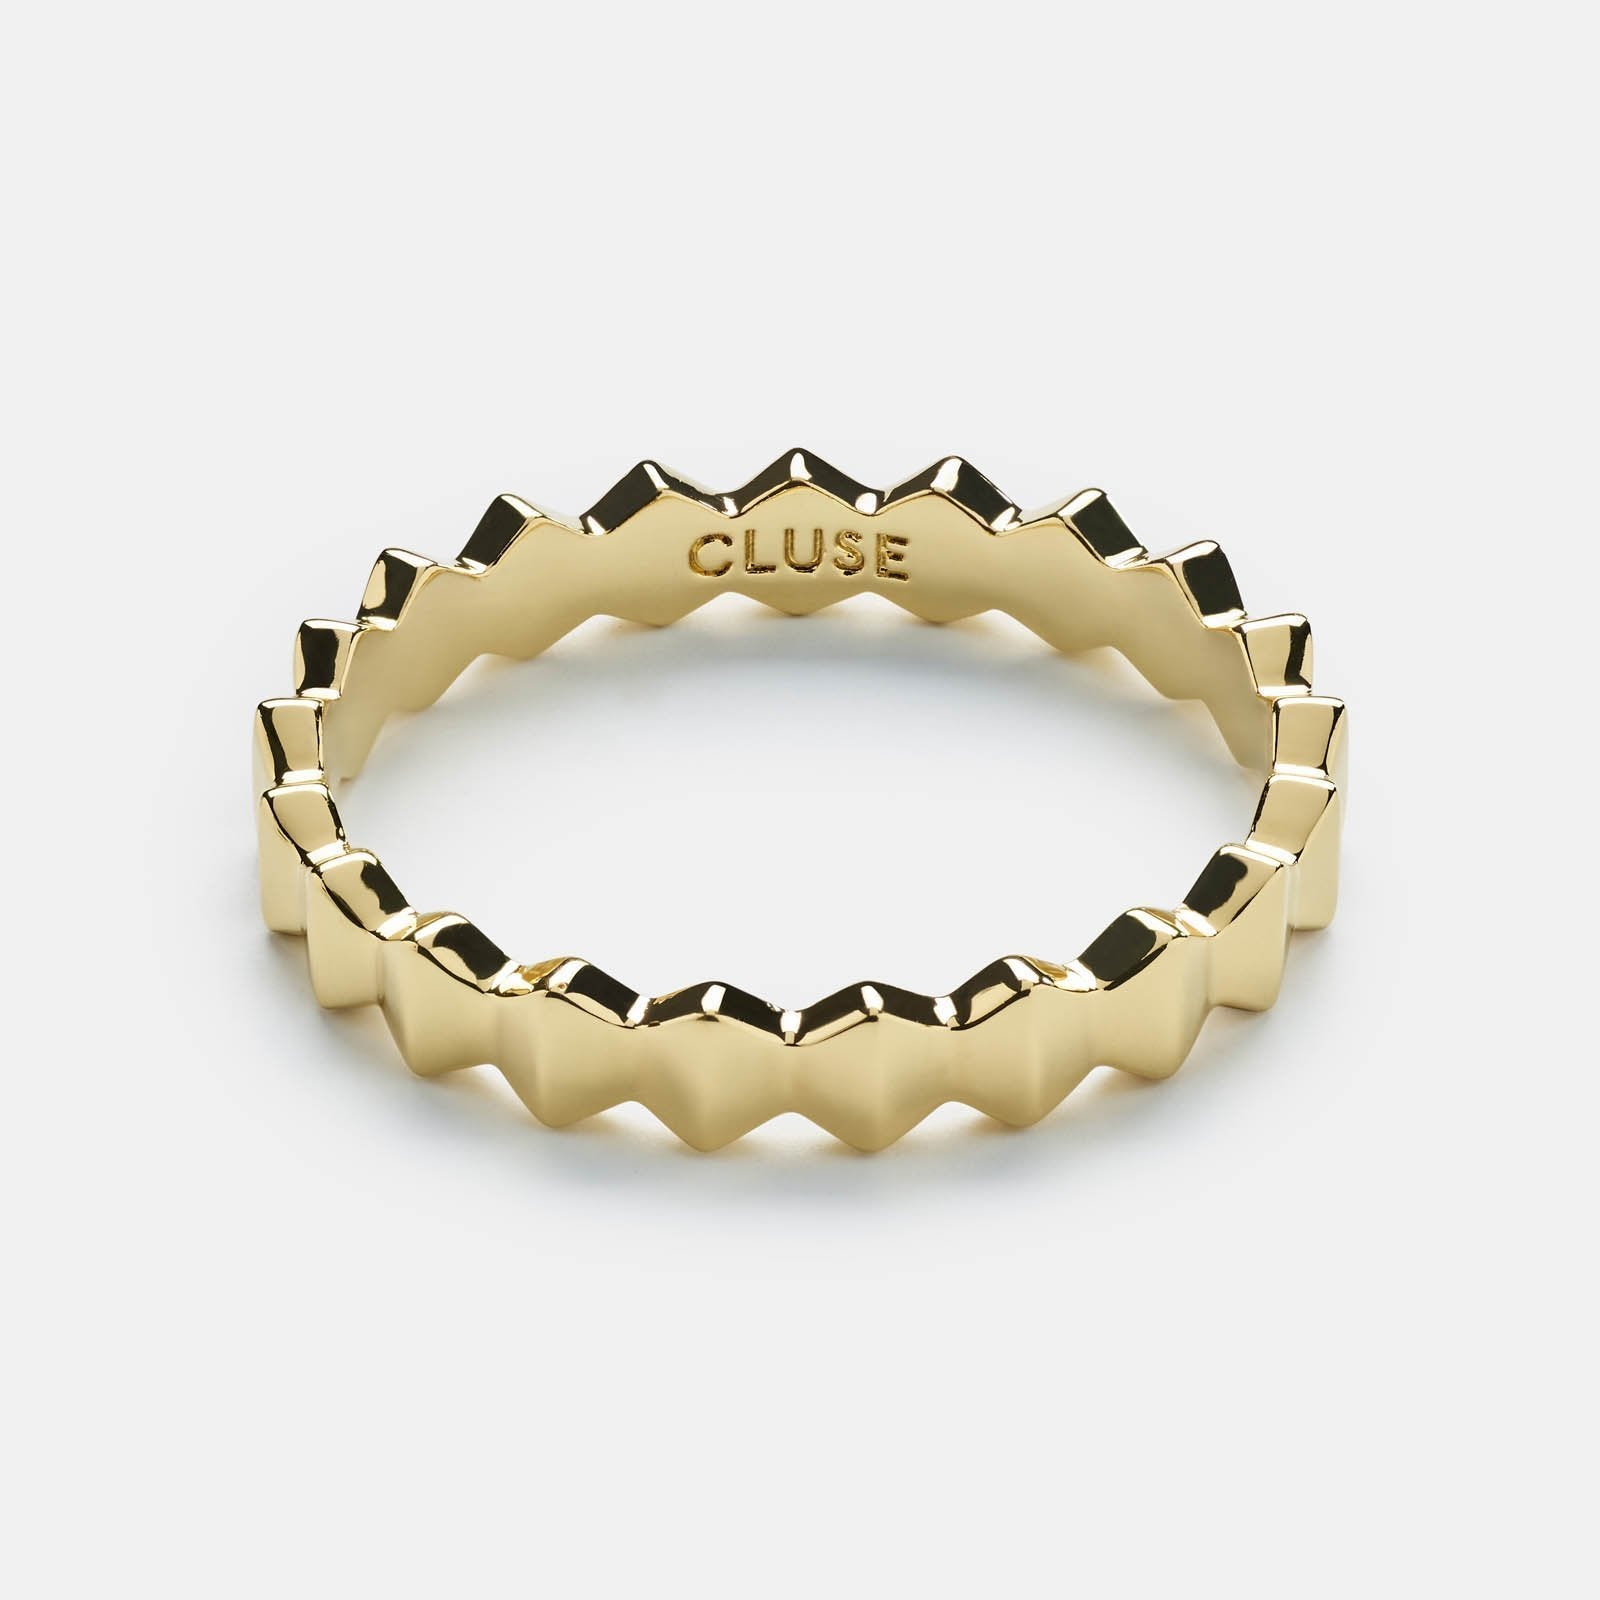 CLUSE Essentielle Gold All Hexagons Ring - 54 CLJ41006-54 - Bagues taille 54